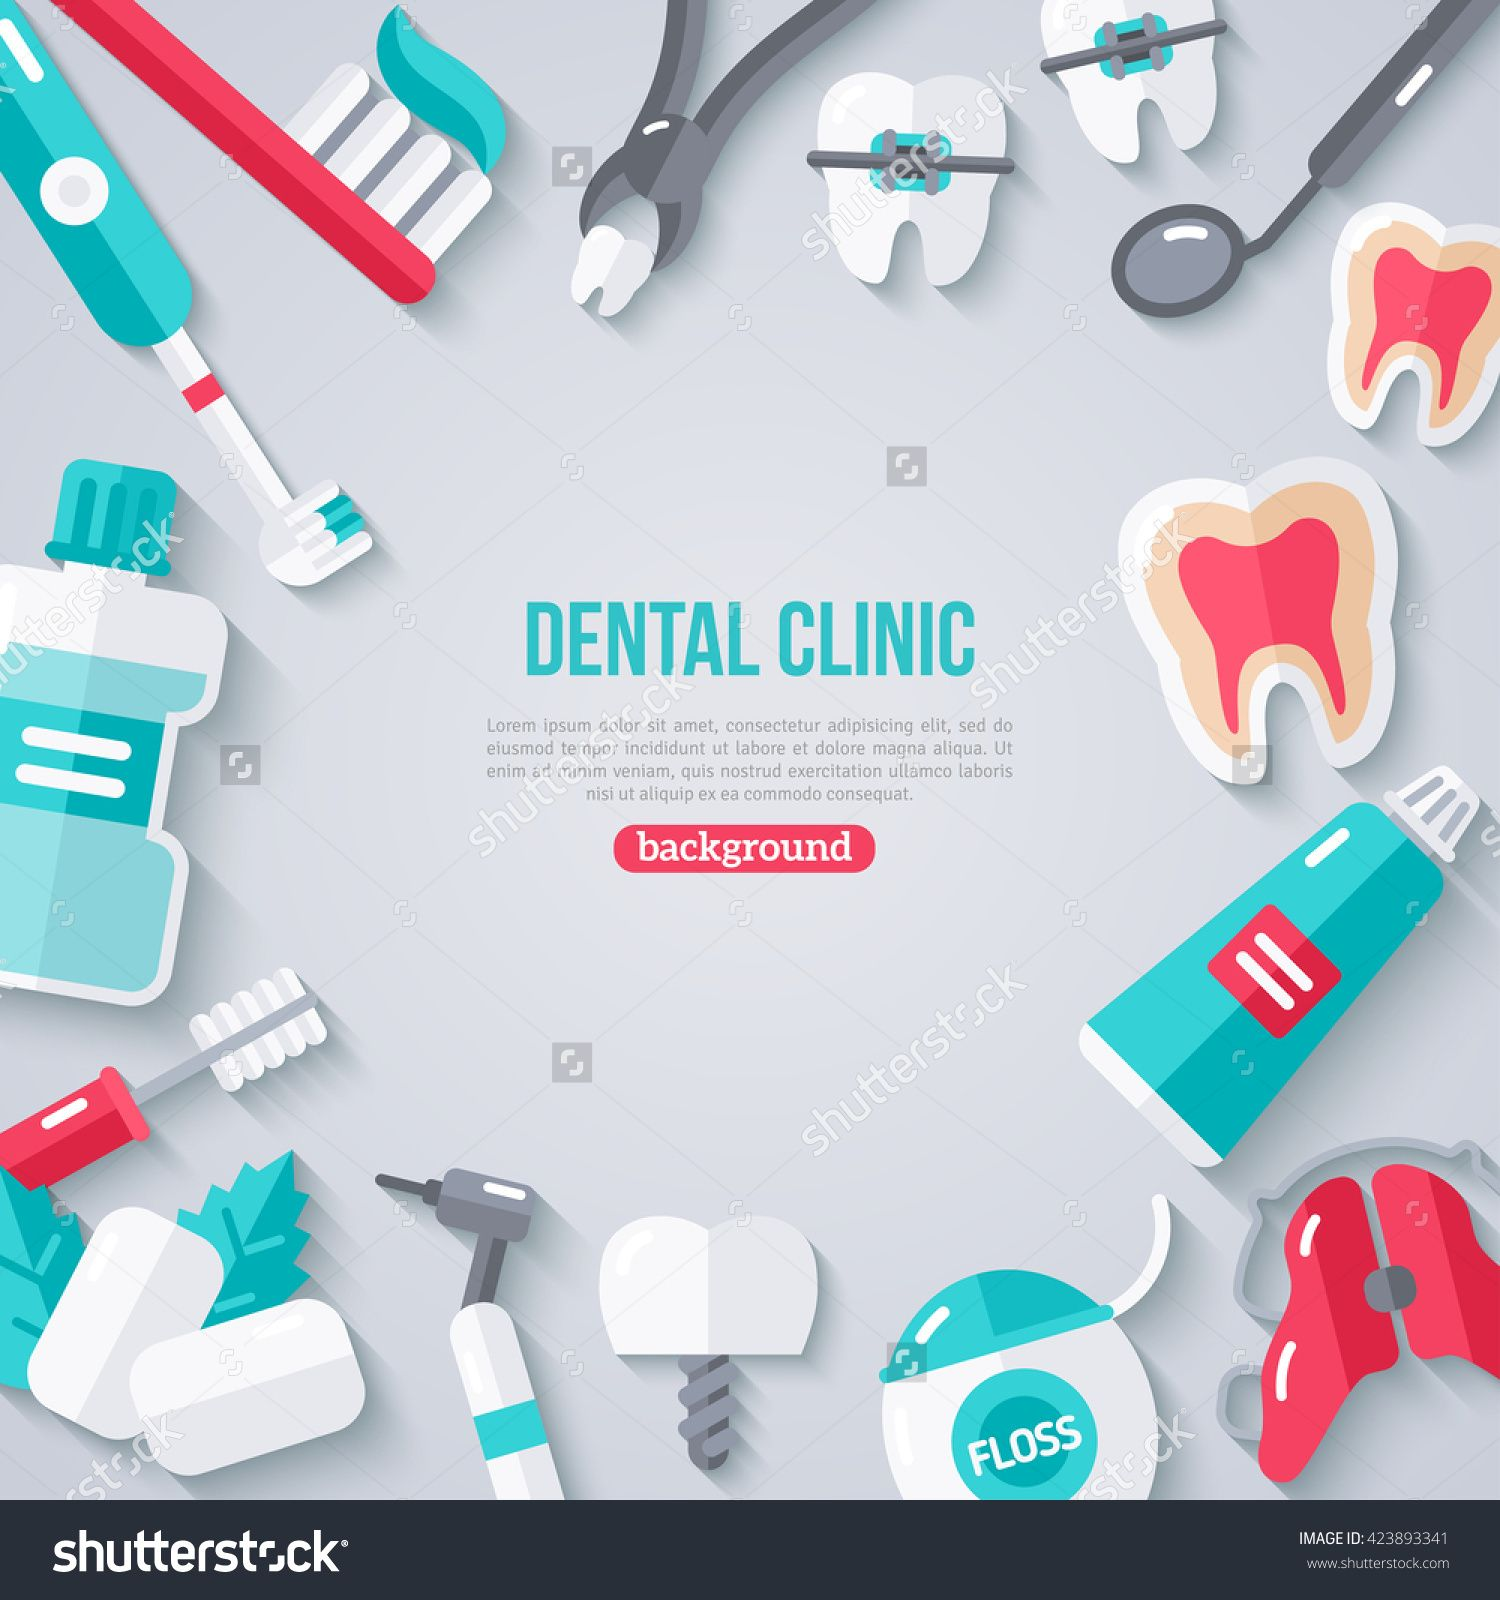 Dentistry Banner With Flat Icons. Vector illustration